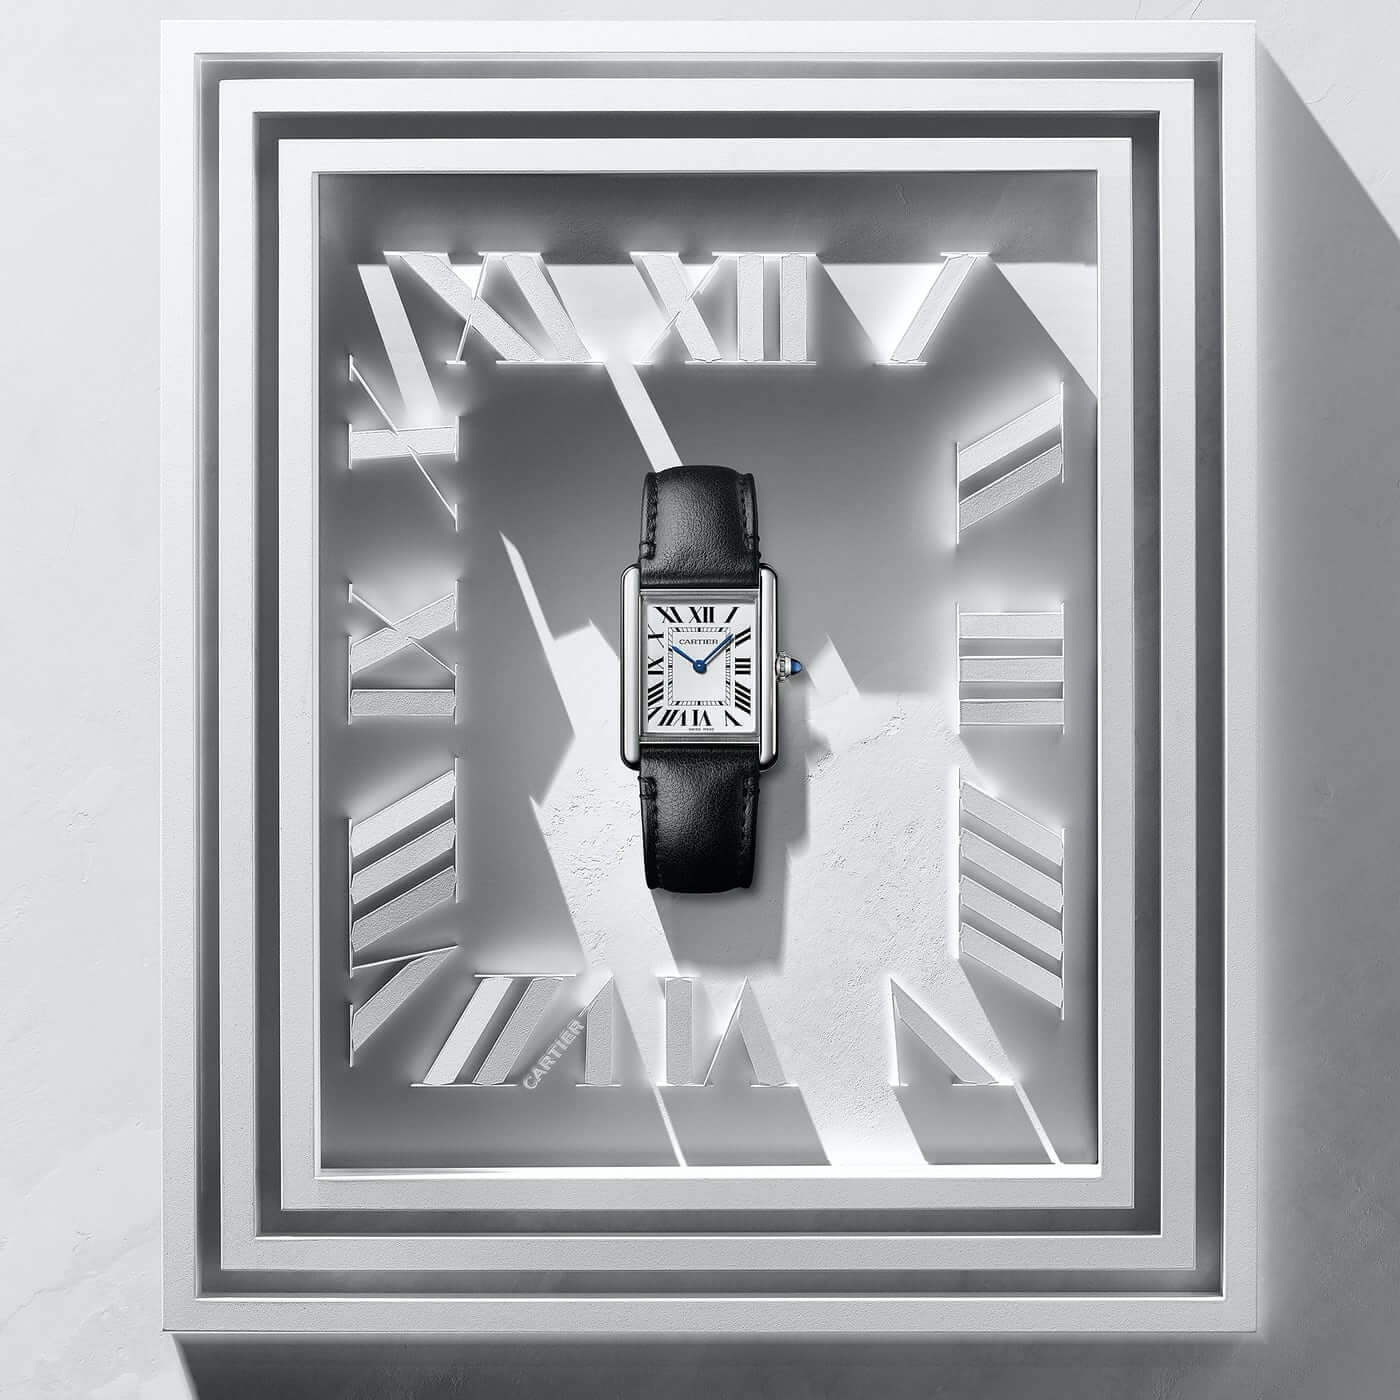 07 WSTA0059 Cartier Tank Must SolarBeat LM 300